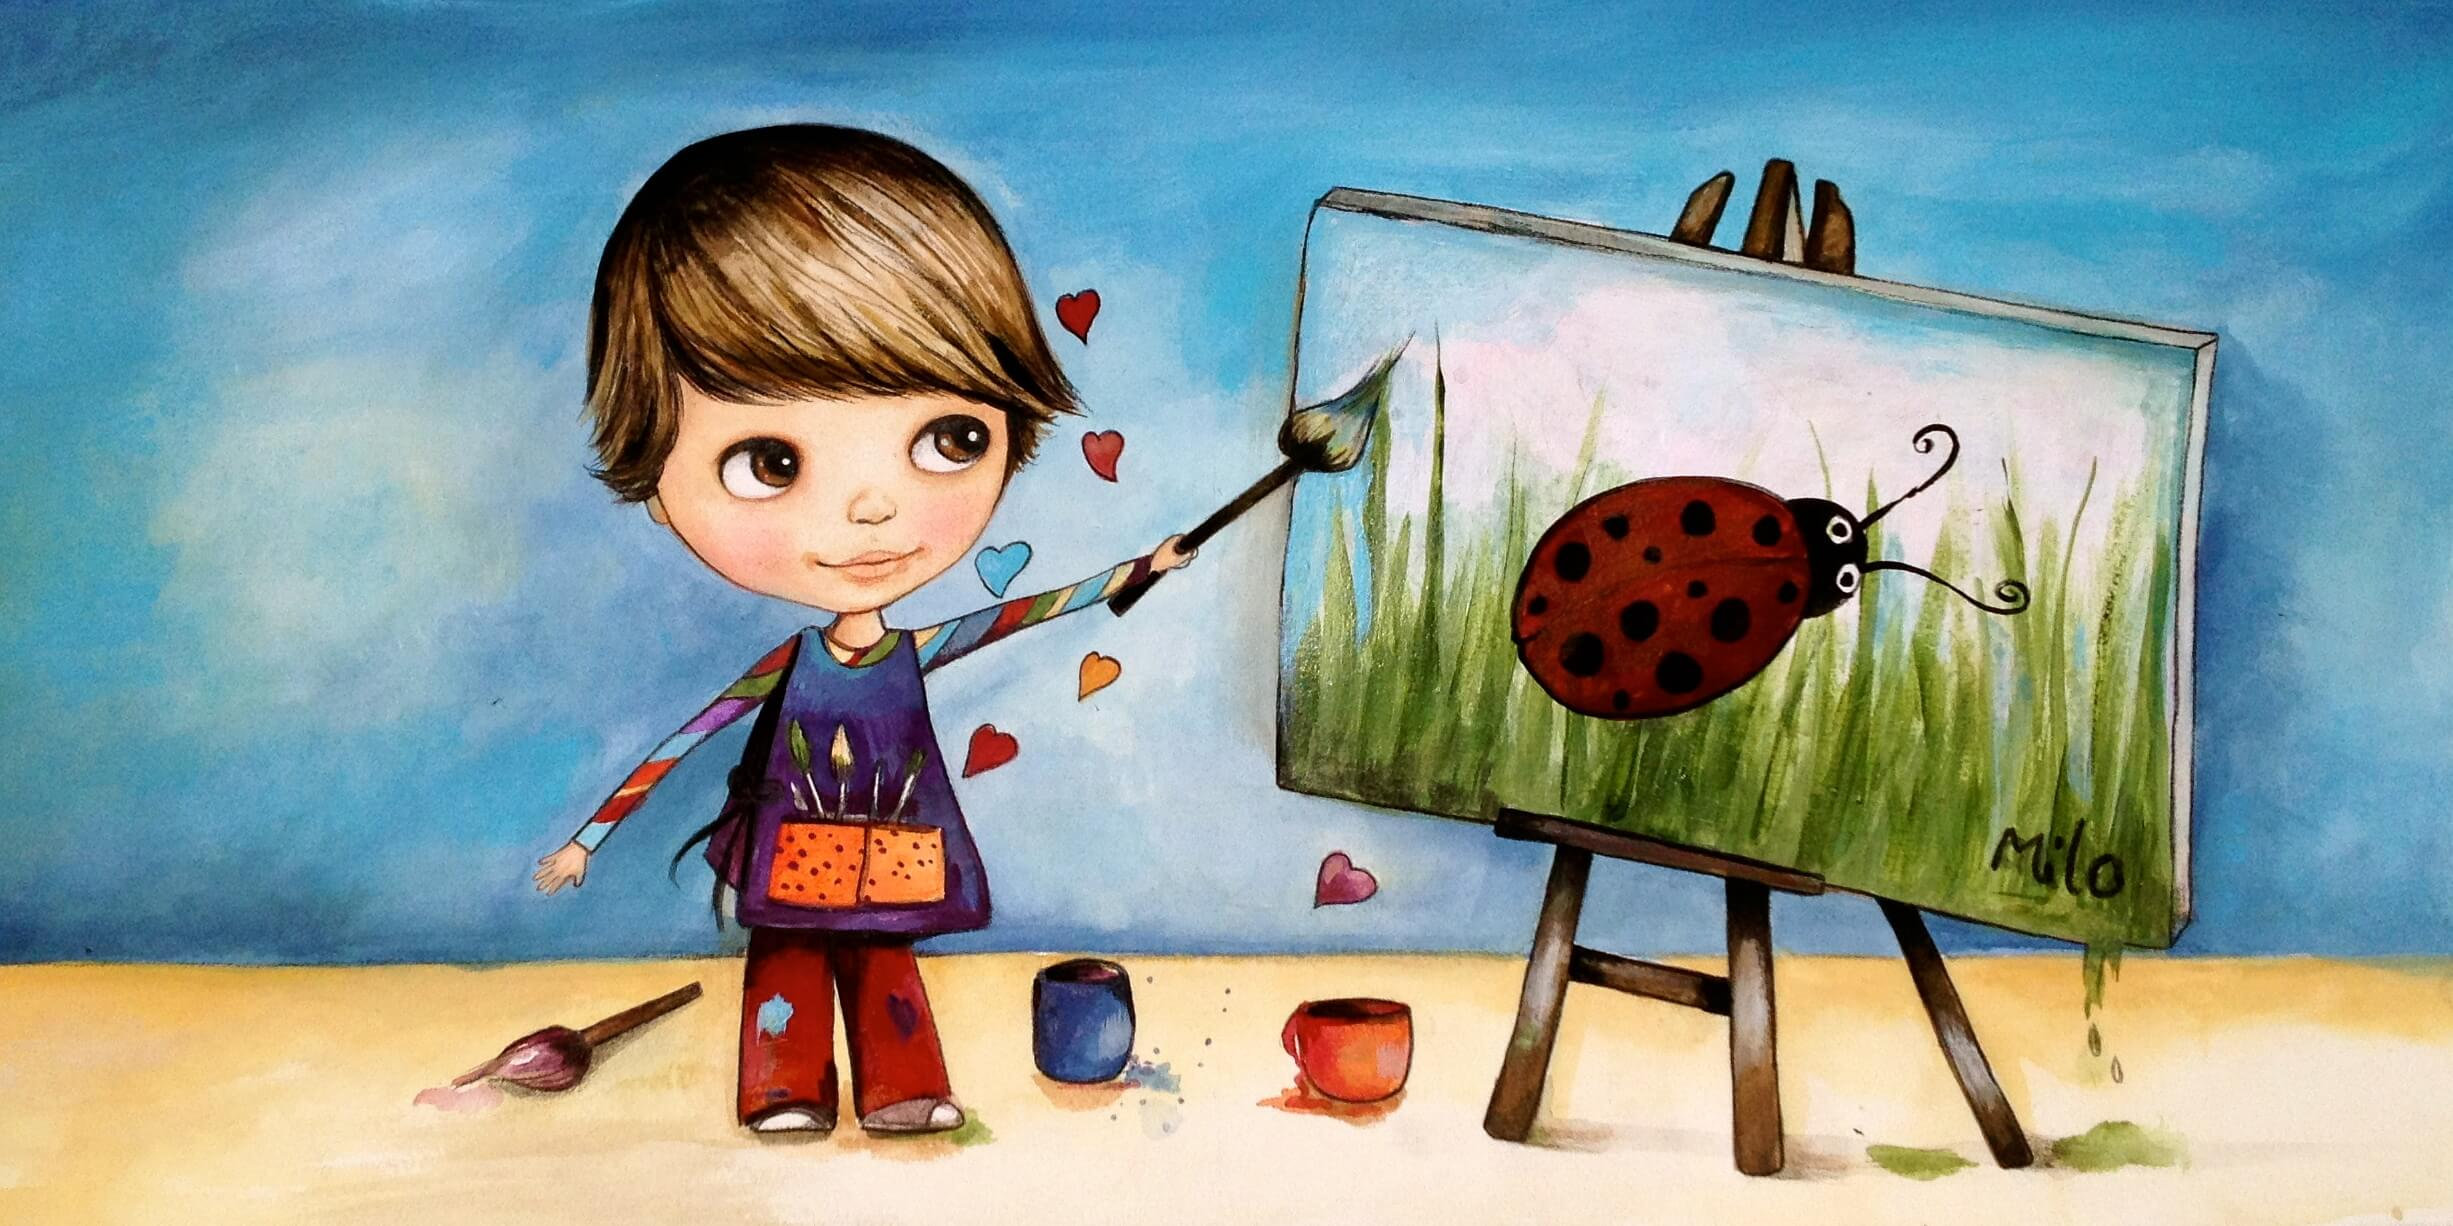 Child Painting Ladybug